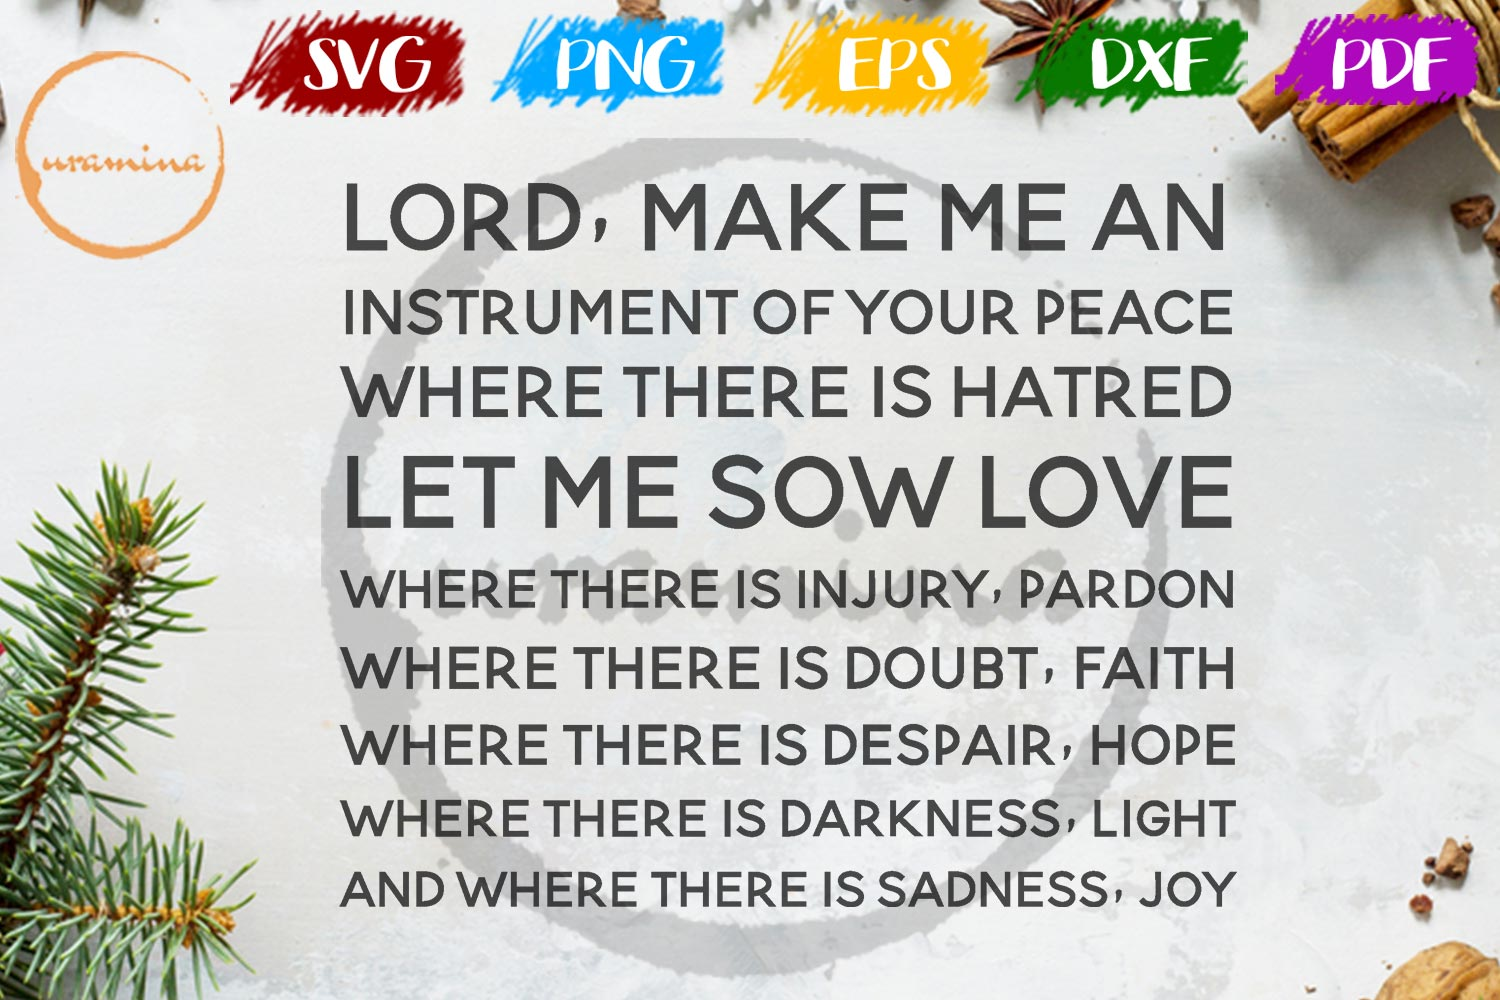 Download Free Lord Make Me An Instrument Of Your Peace Graphic By Uramina Creative Fabrica for Cricut Explore, Silhouette and other cutting machines.